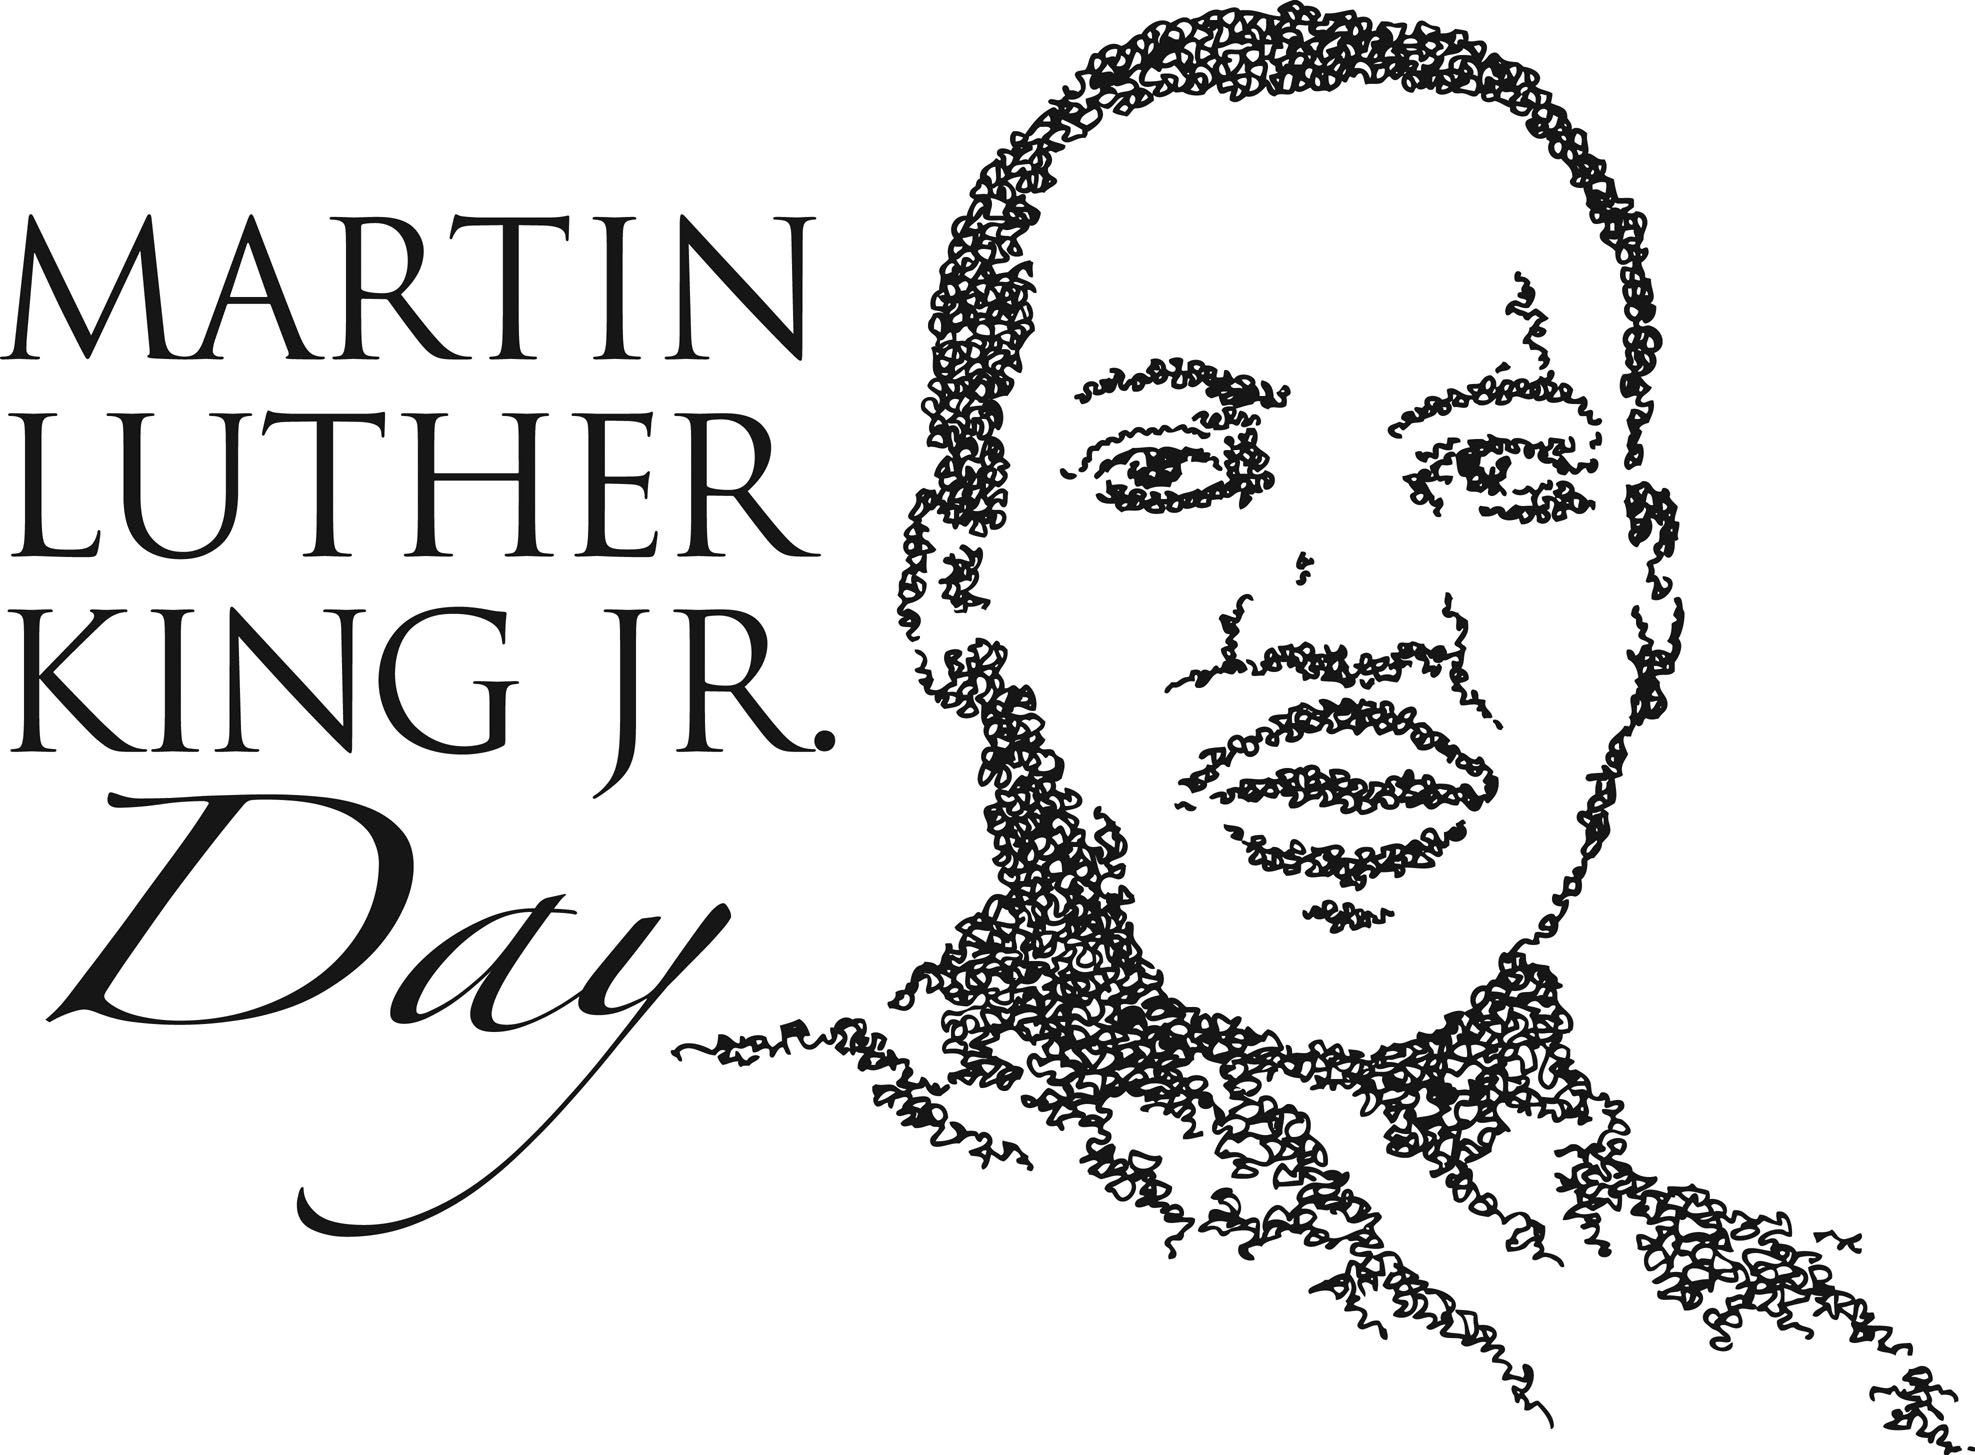 Portrait clipart mlk - Pencil and in color portrait clipart mlk